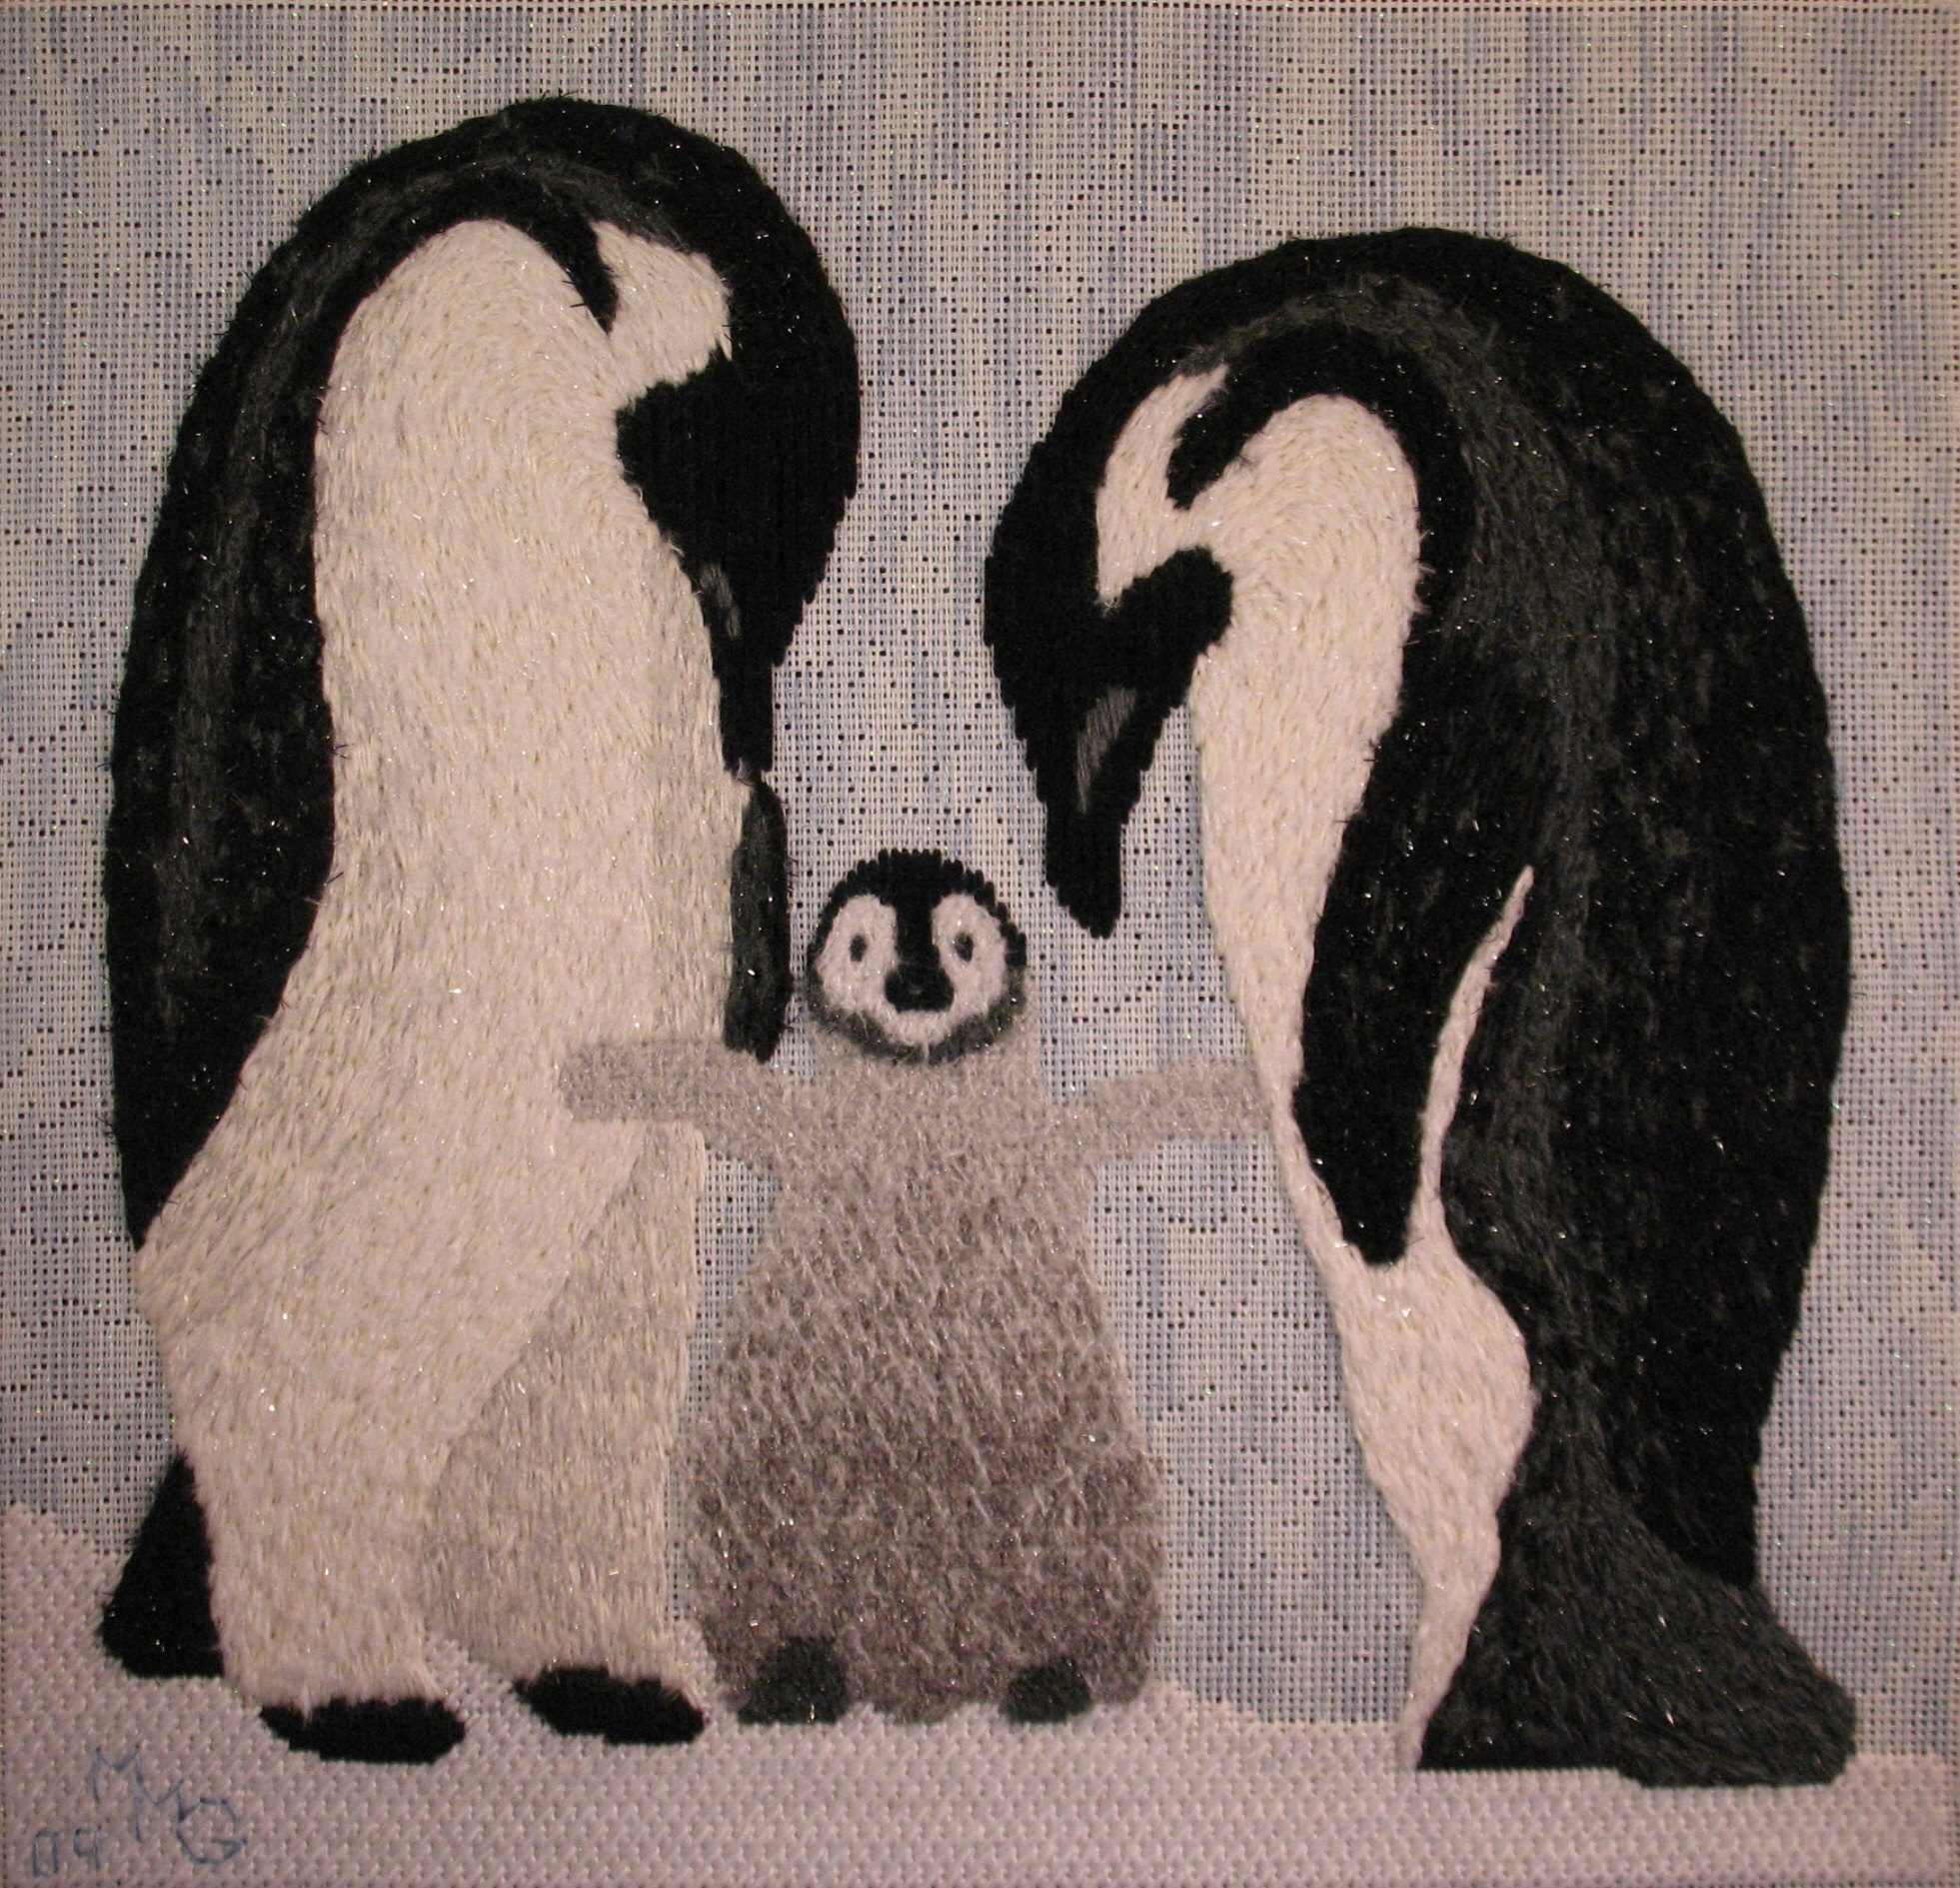 Penguin Family Drawing 6 Comments